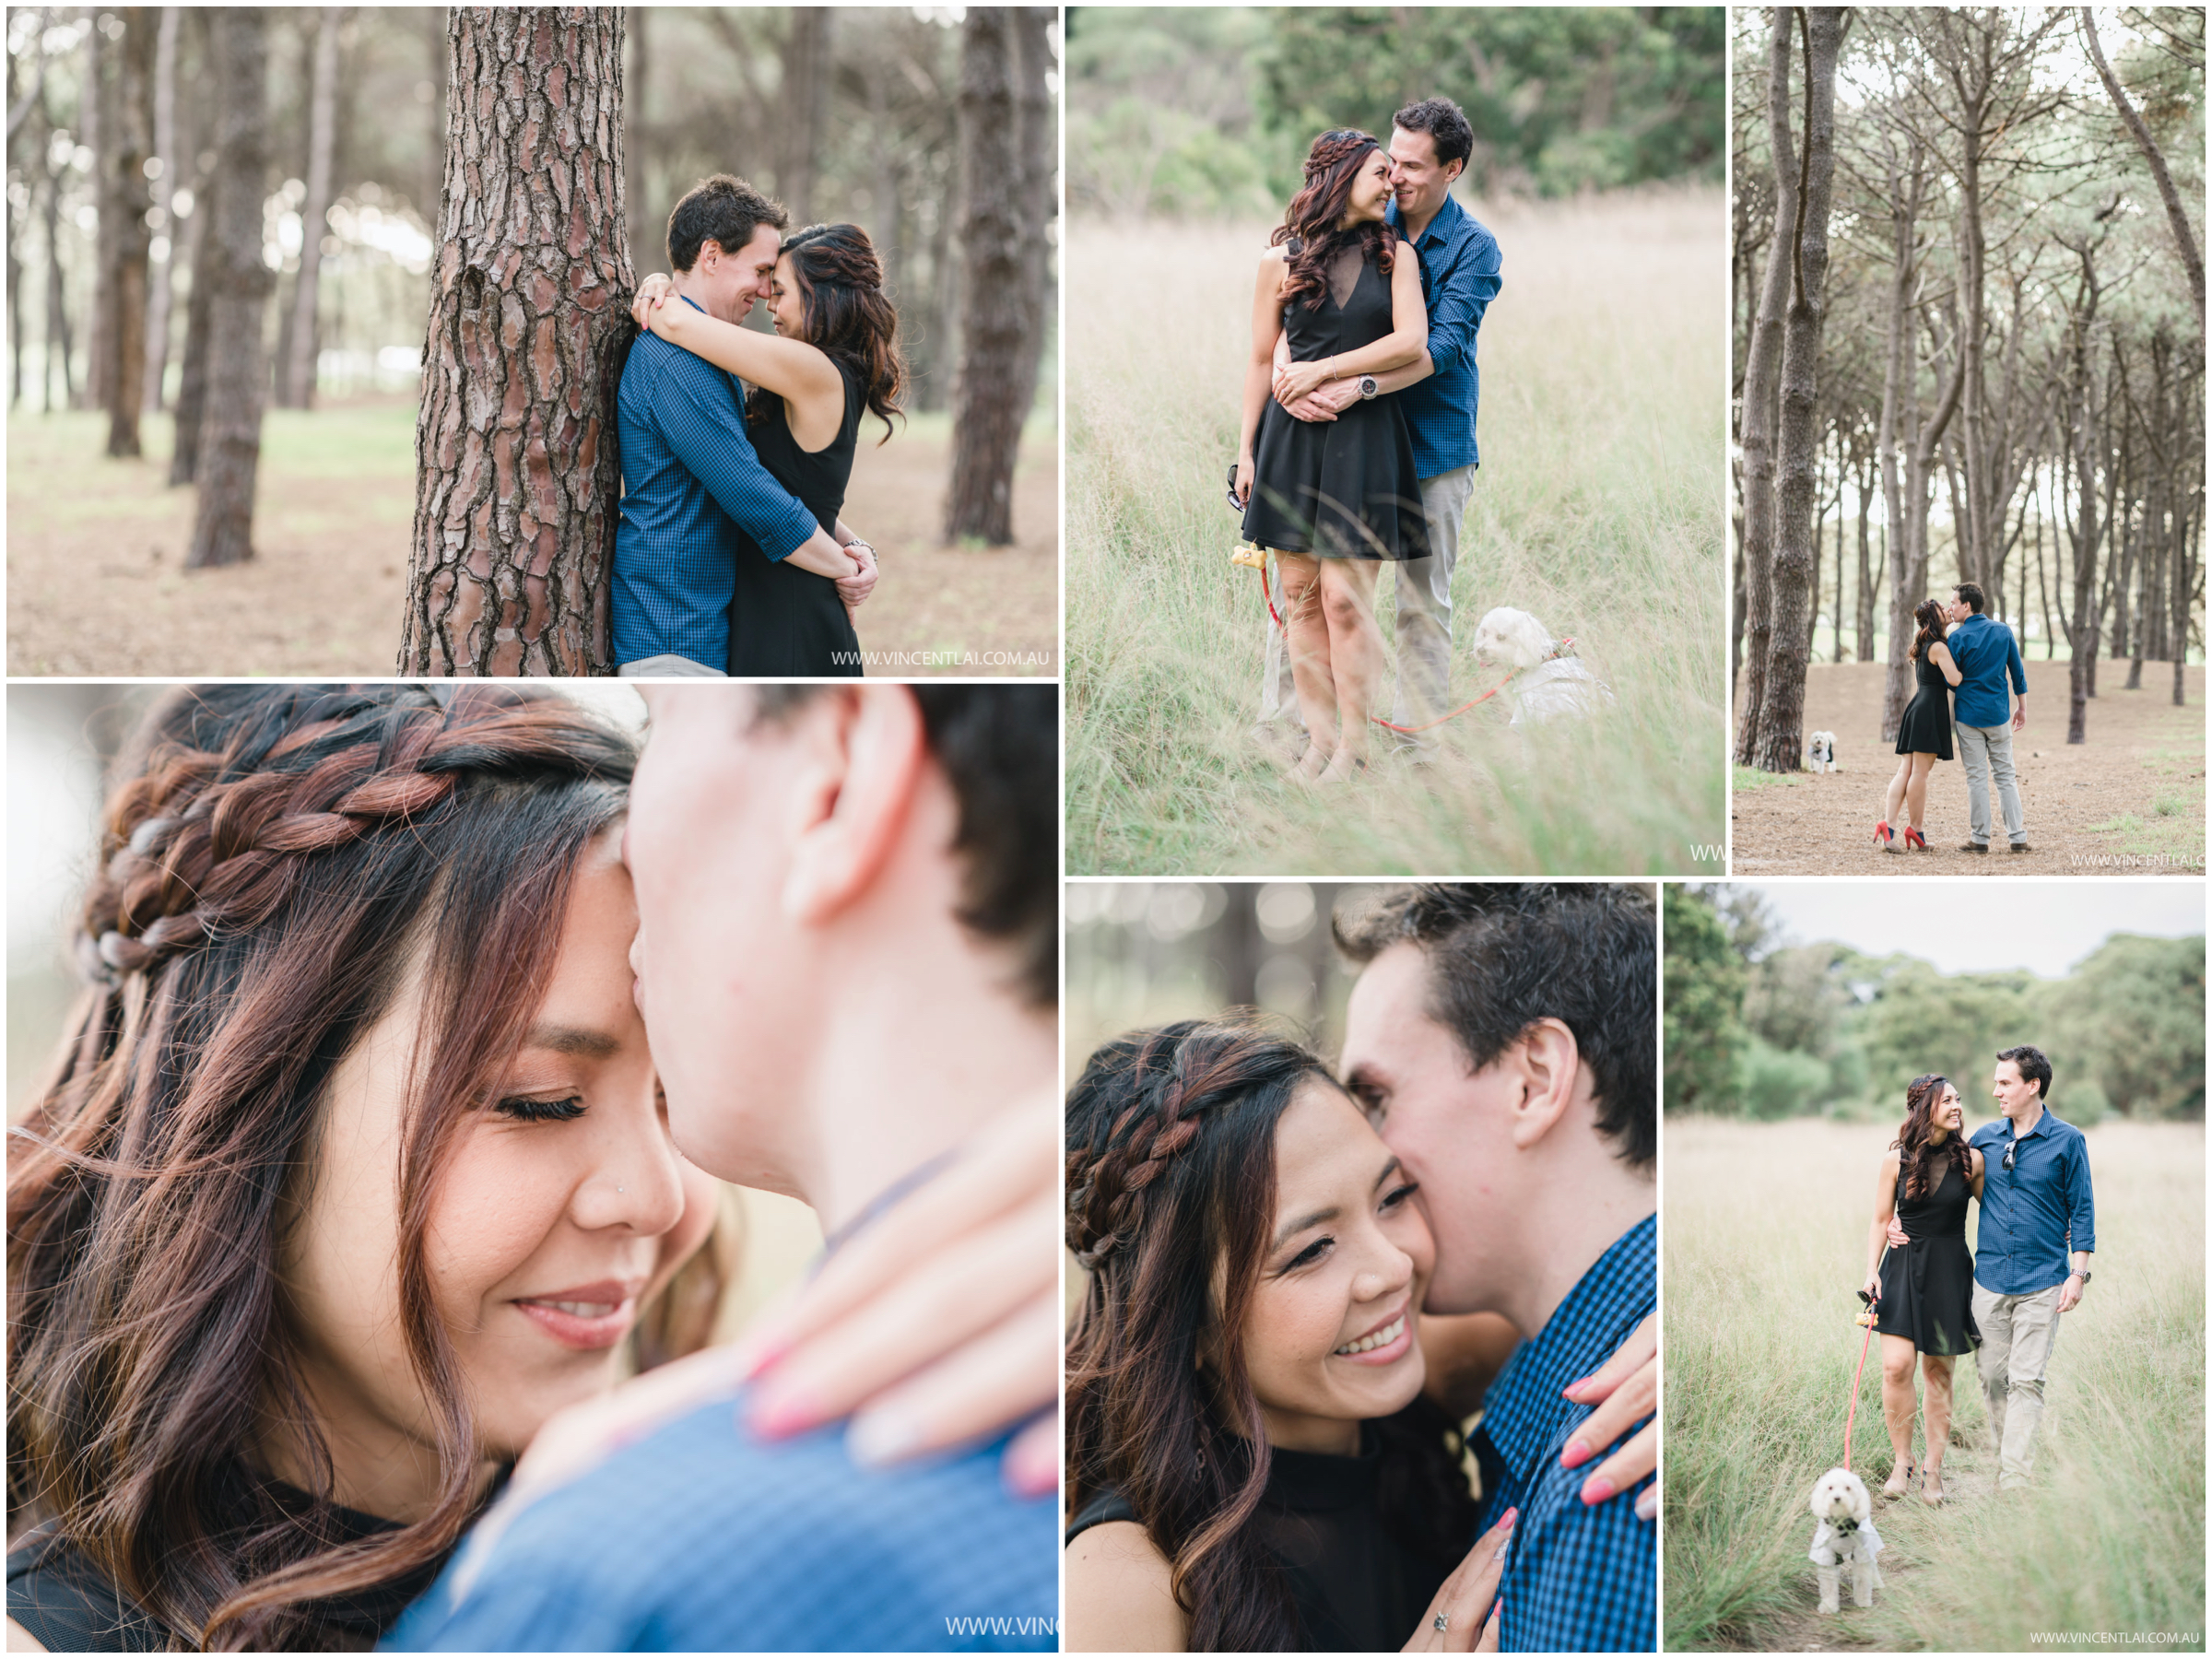 Prewedding Photo Session at Centennial Park